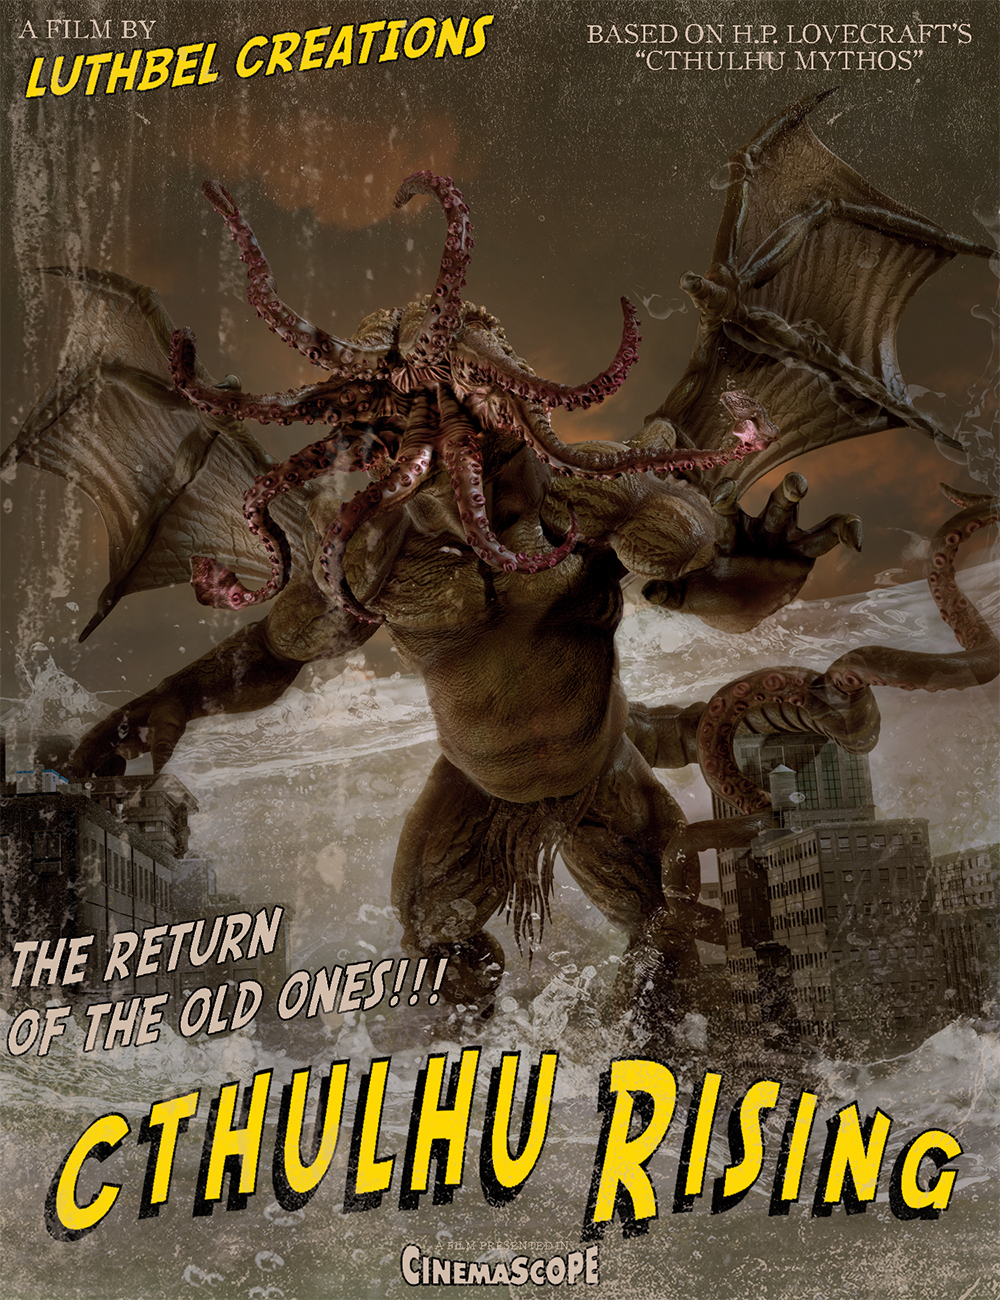 Cthulhu Rising by: Luthbel, 3D Models by Daz 3D